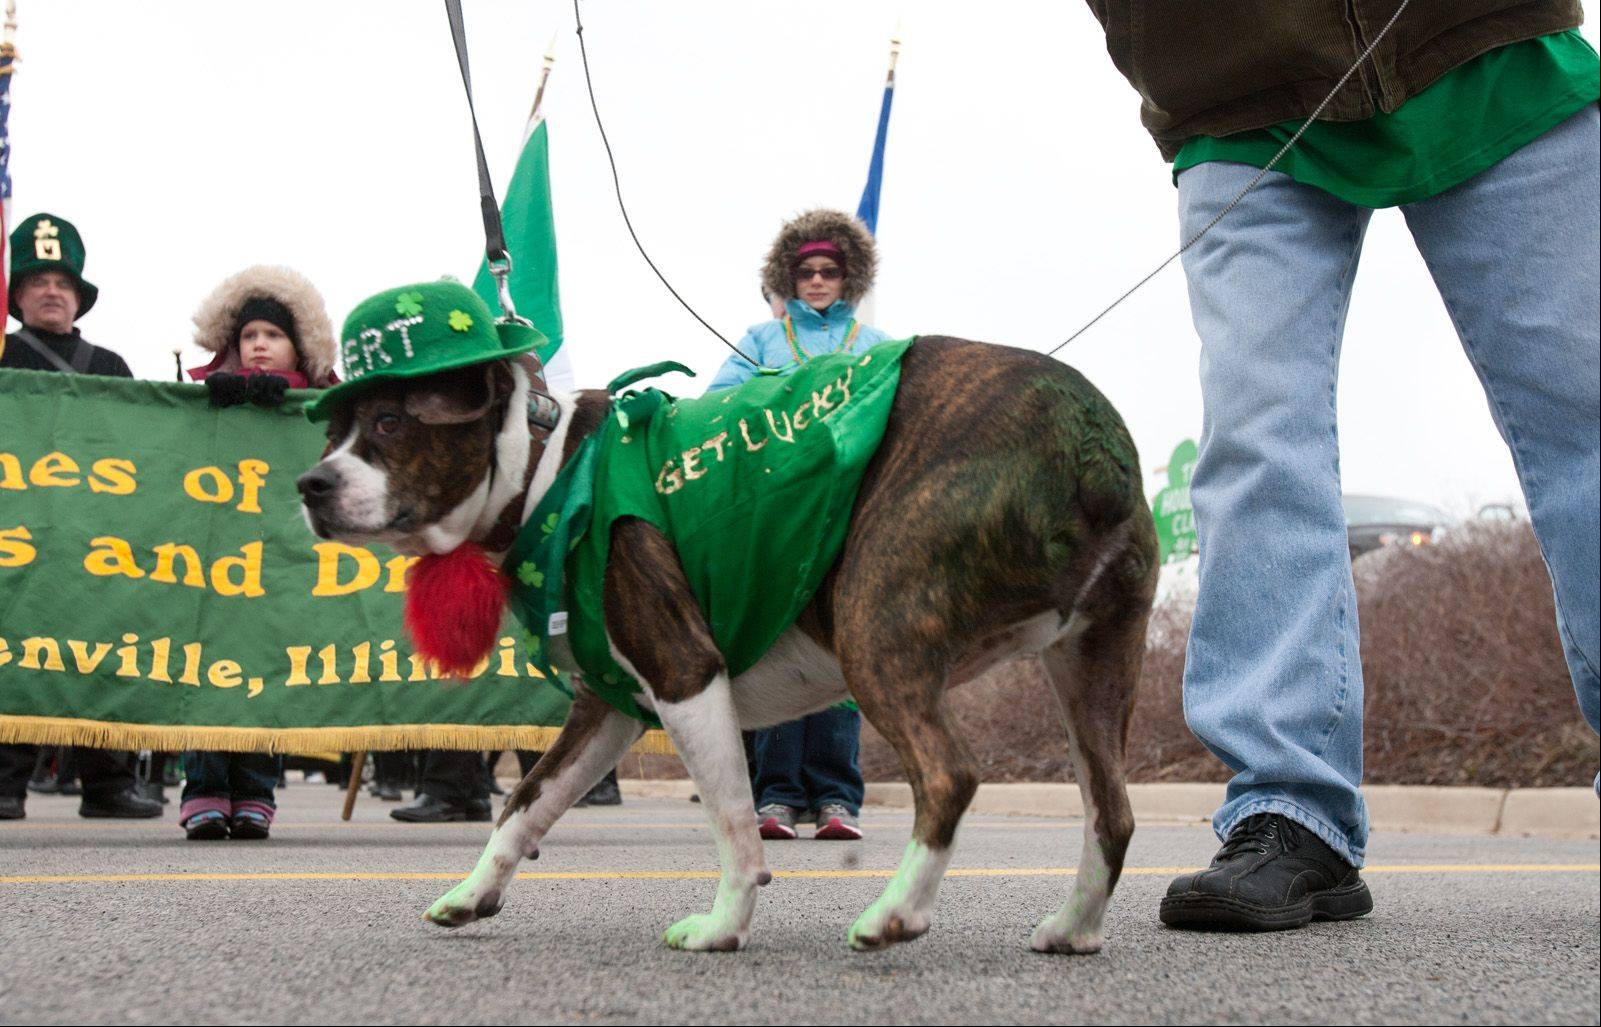 Bert, a Boston terrier/beagle mix, is one of many dogs walking Saturday in the Naperville St. Patrick's Day Parade organized by West Suburban Irish.